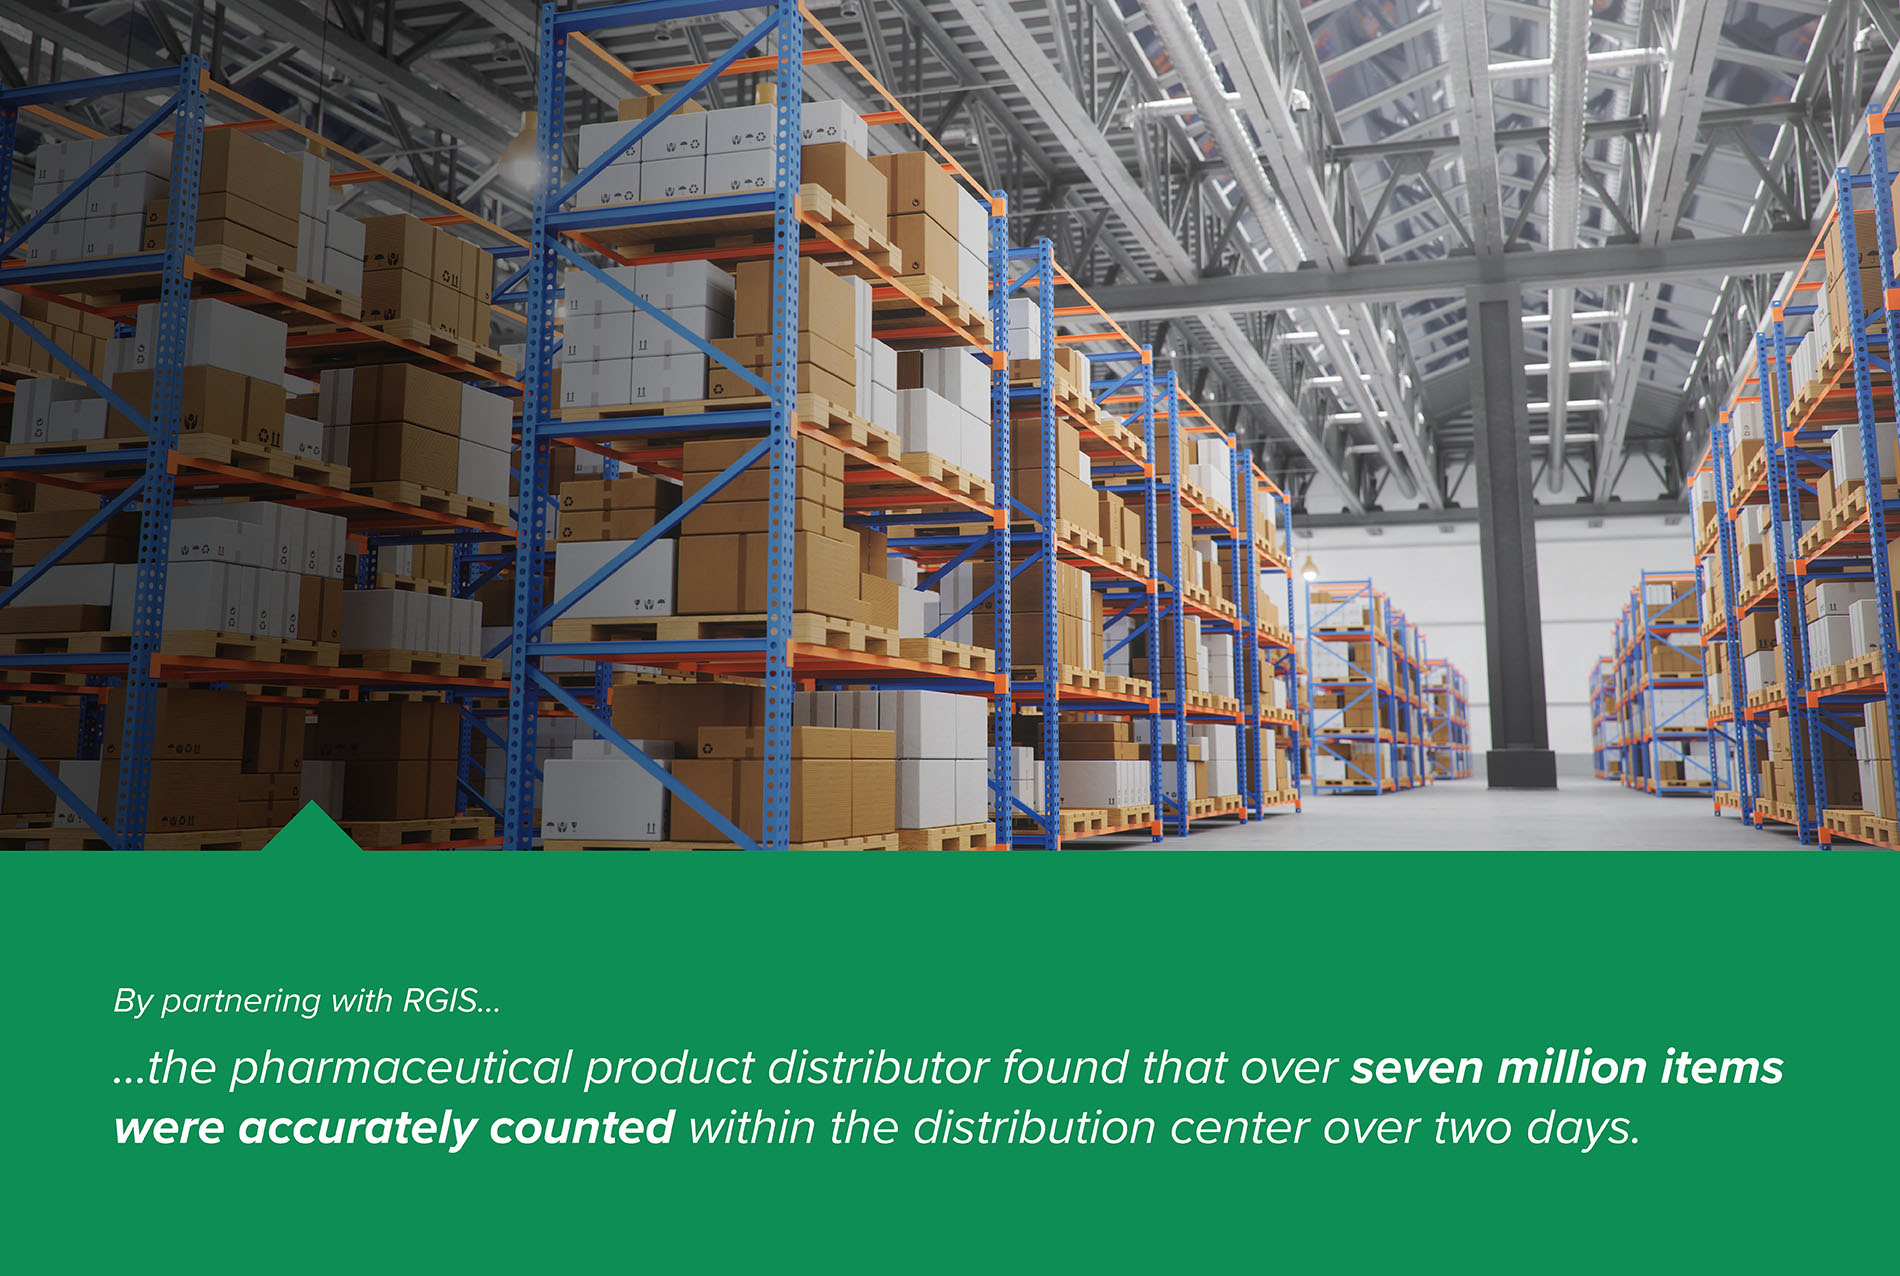 Pharmaceutical Products Distribution Center Count